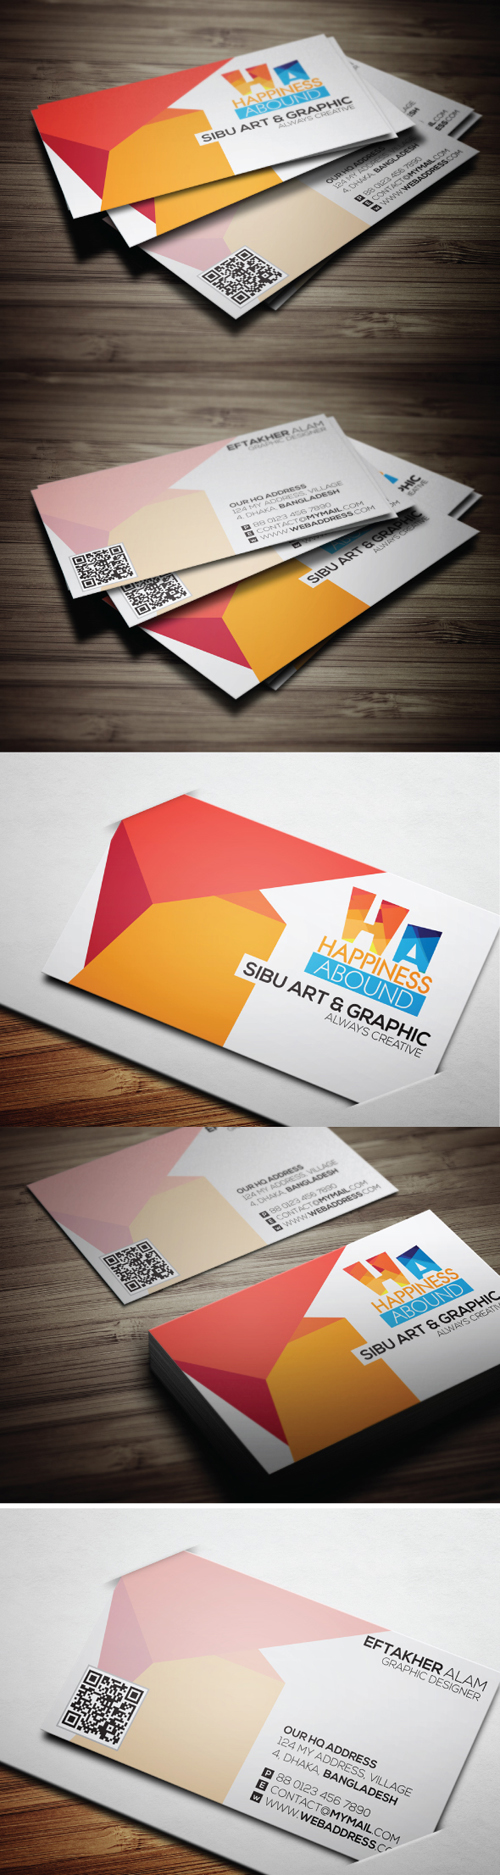 Creative Pro Business Card